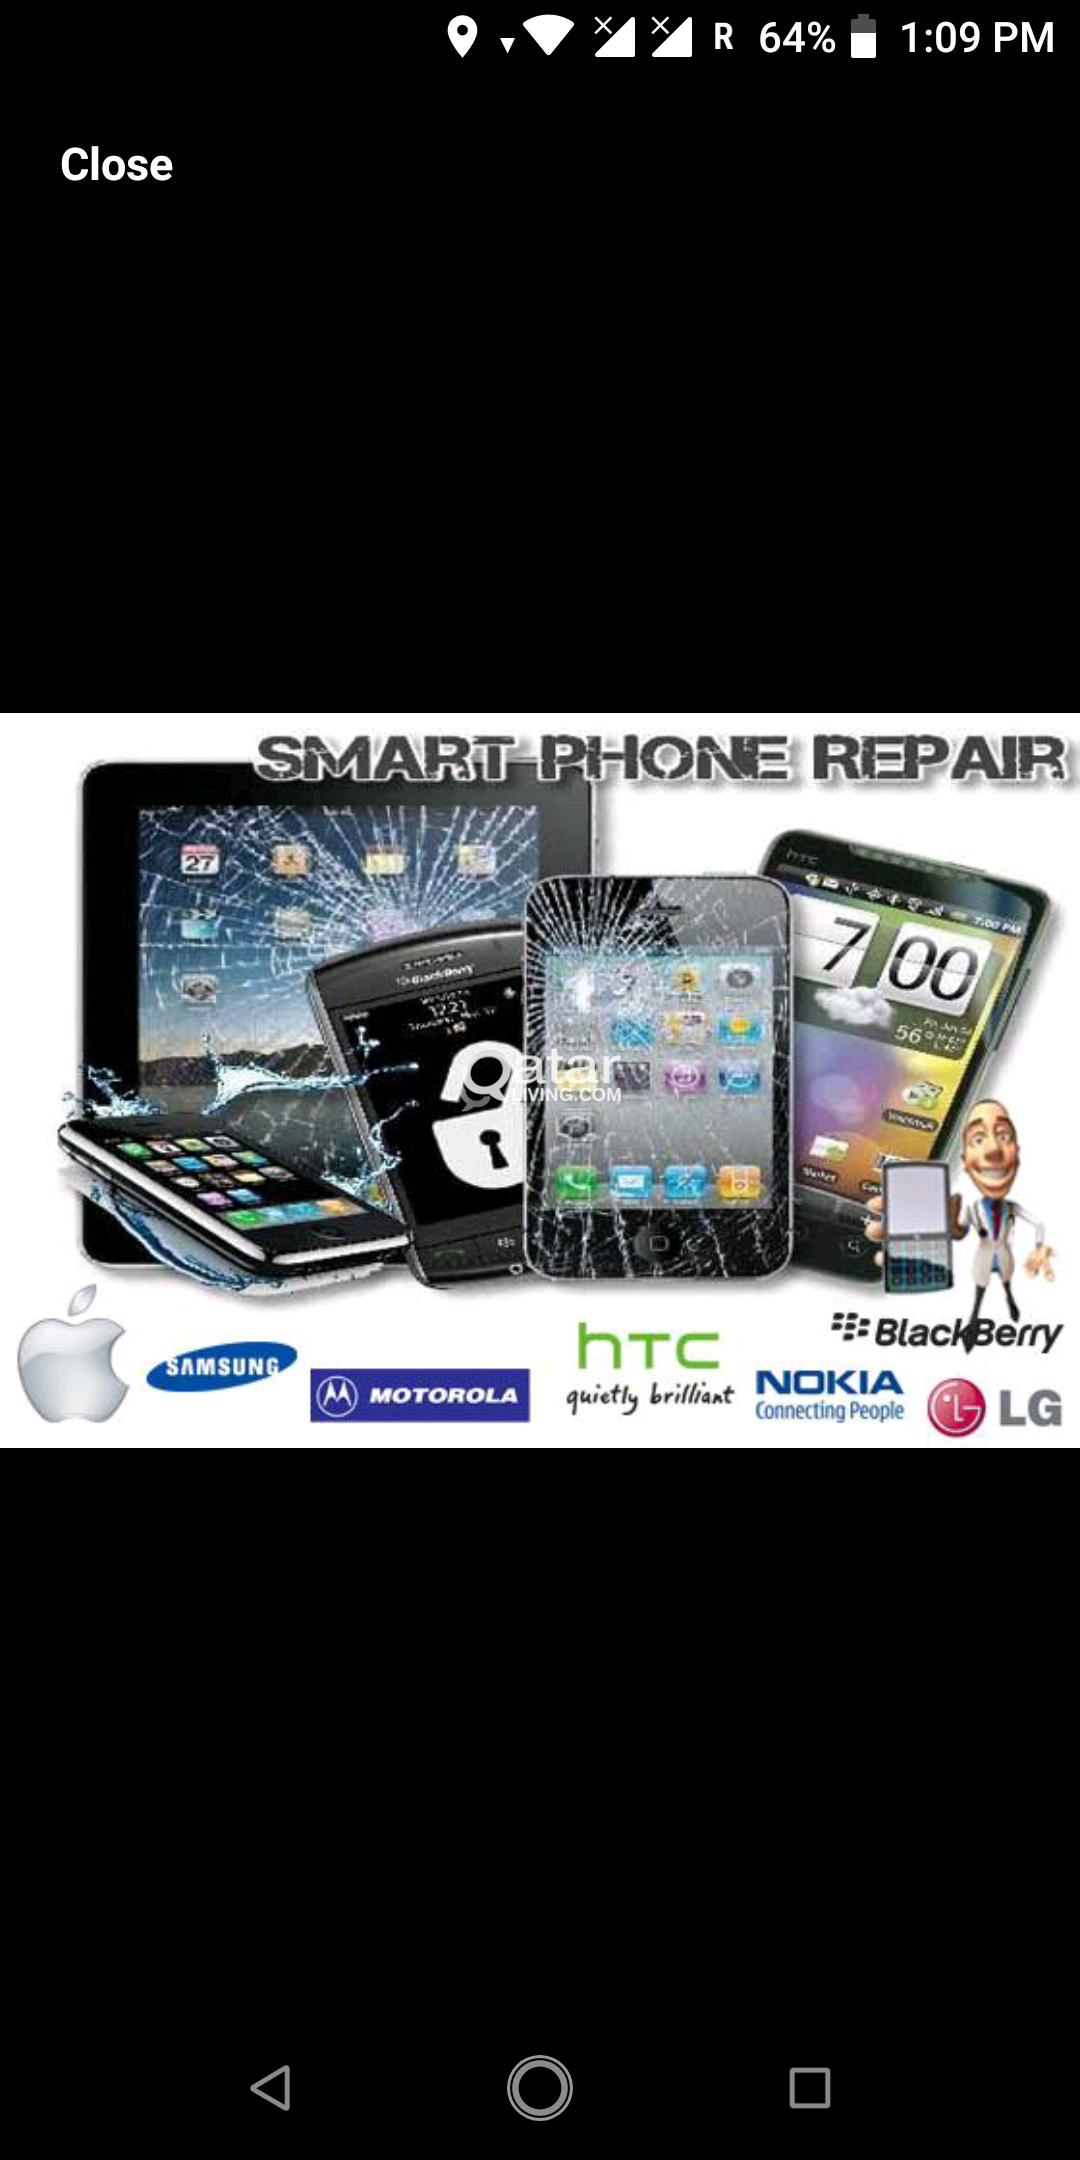 Mobile hardware and software